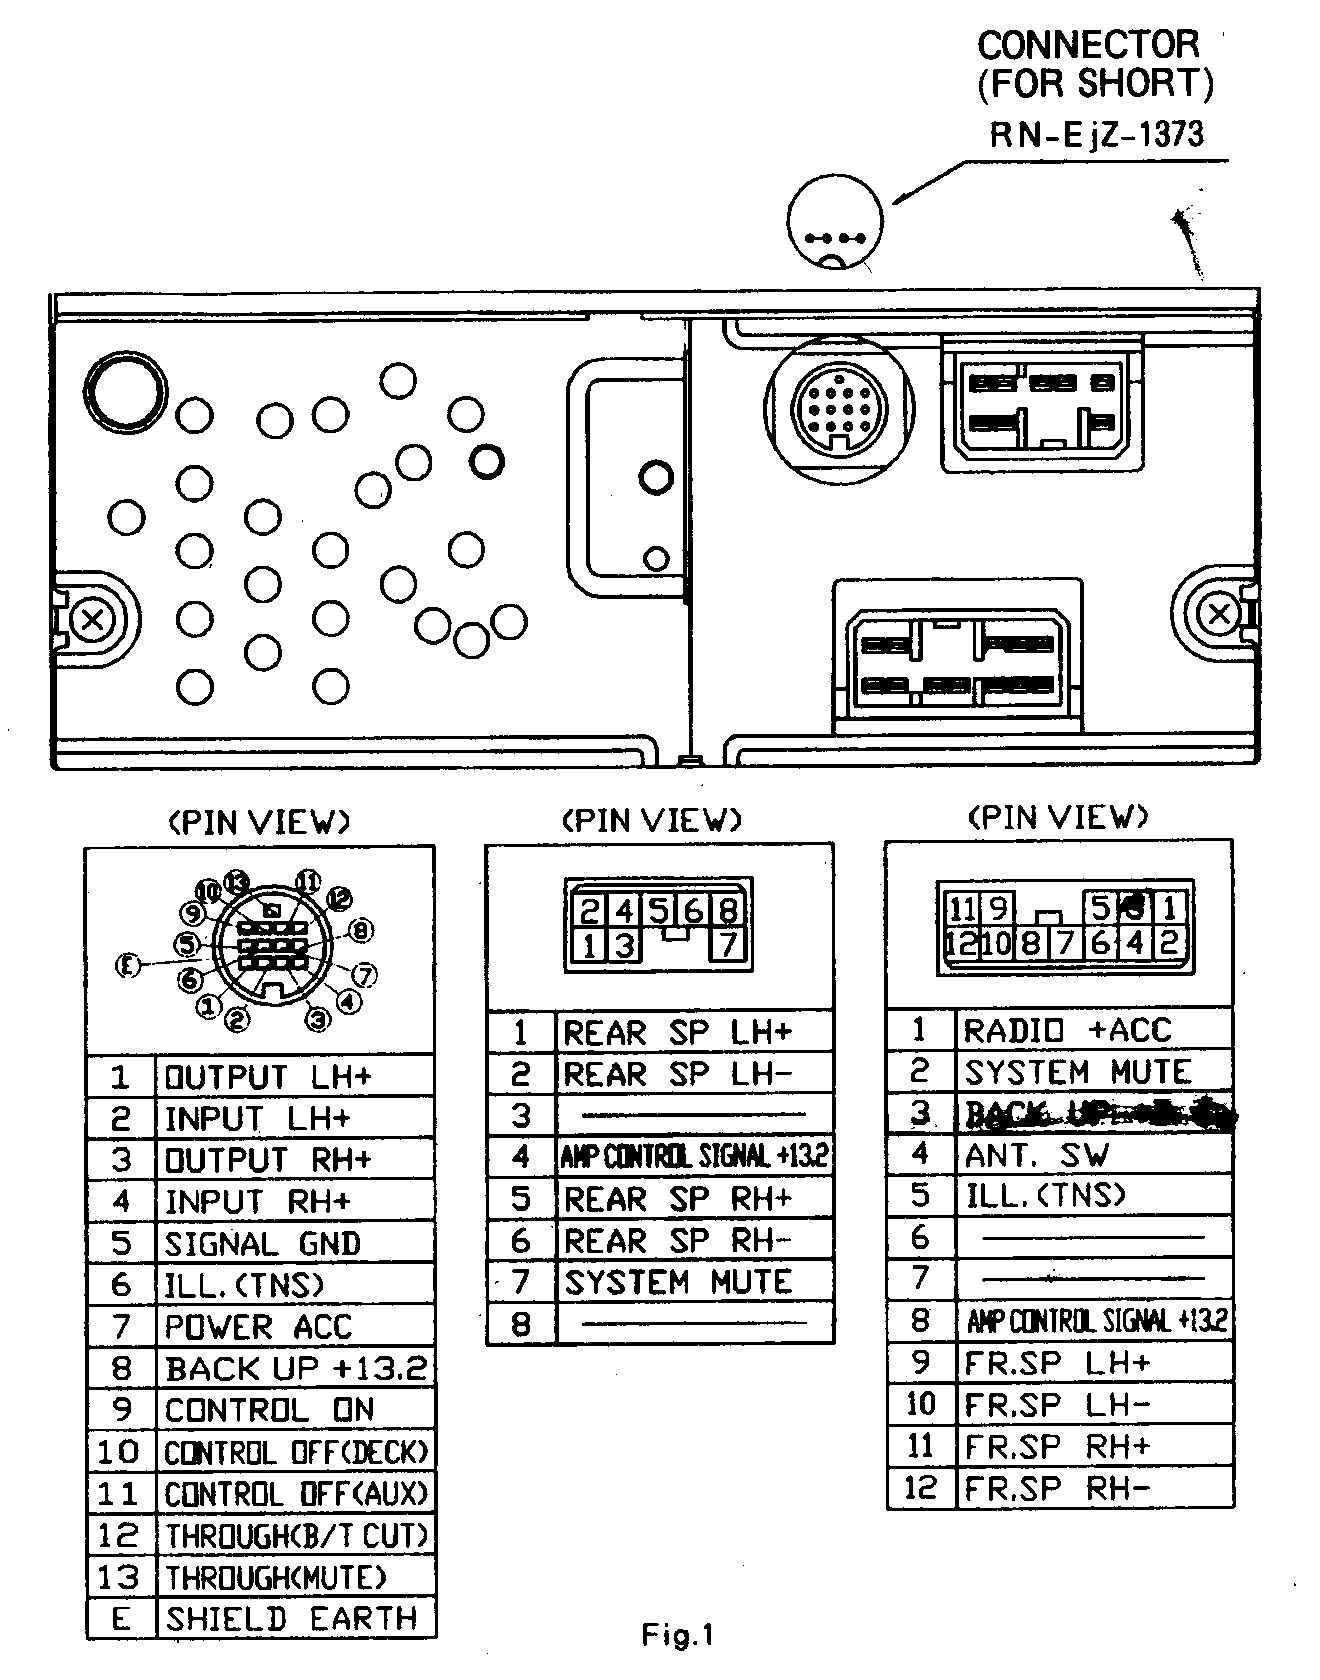 wiring diagram on stereo headphones with microphone wiring diagram